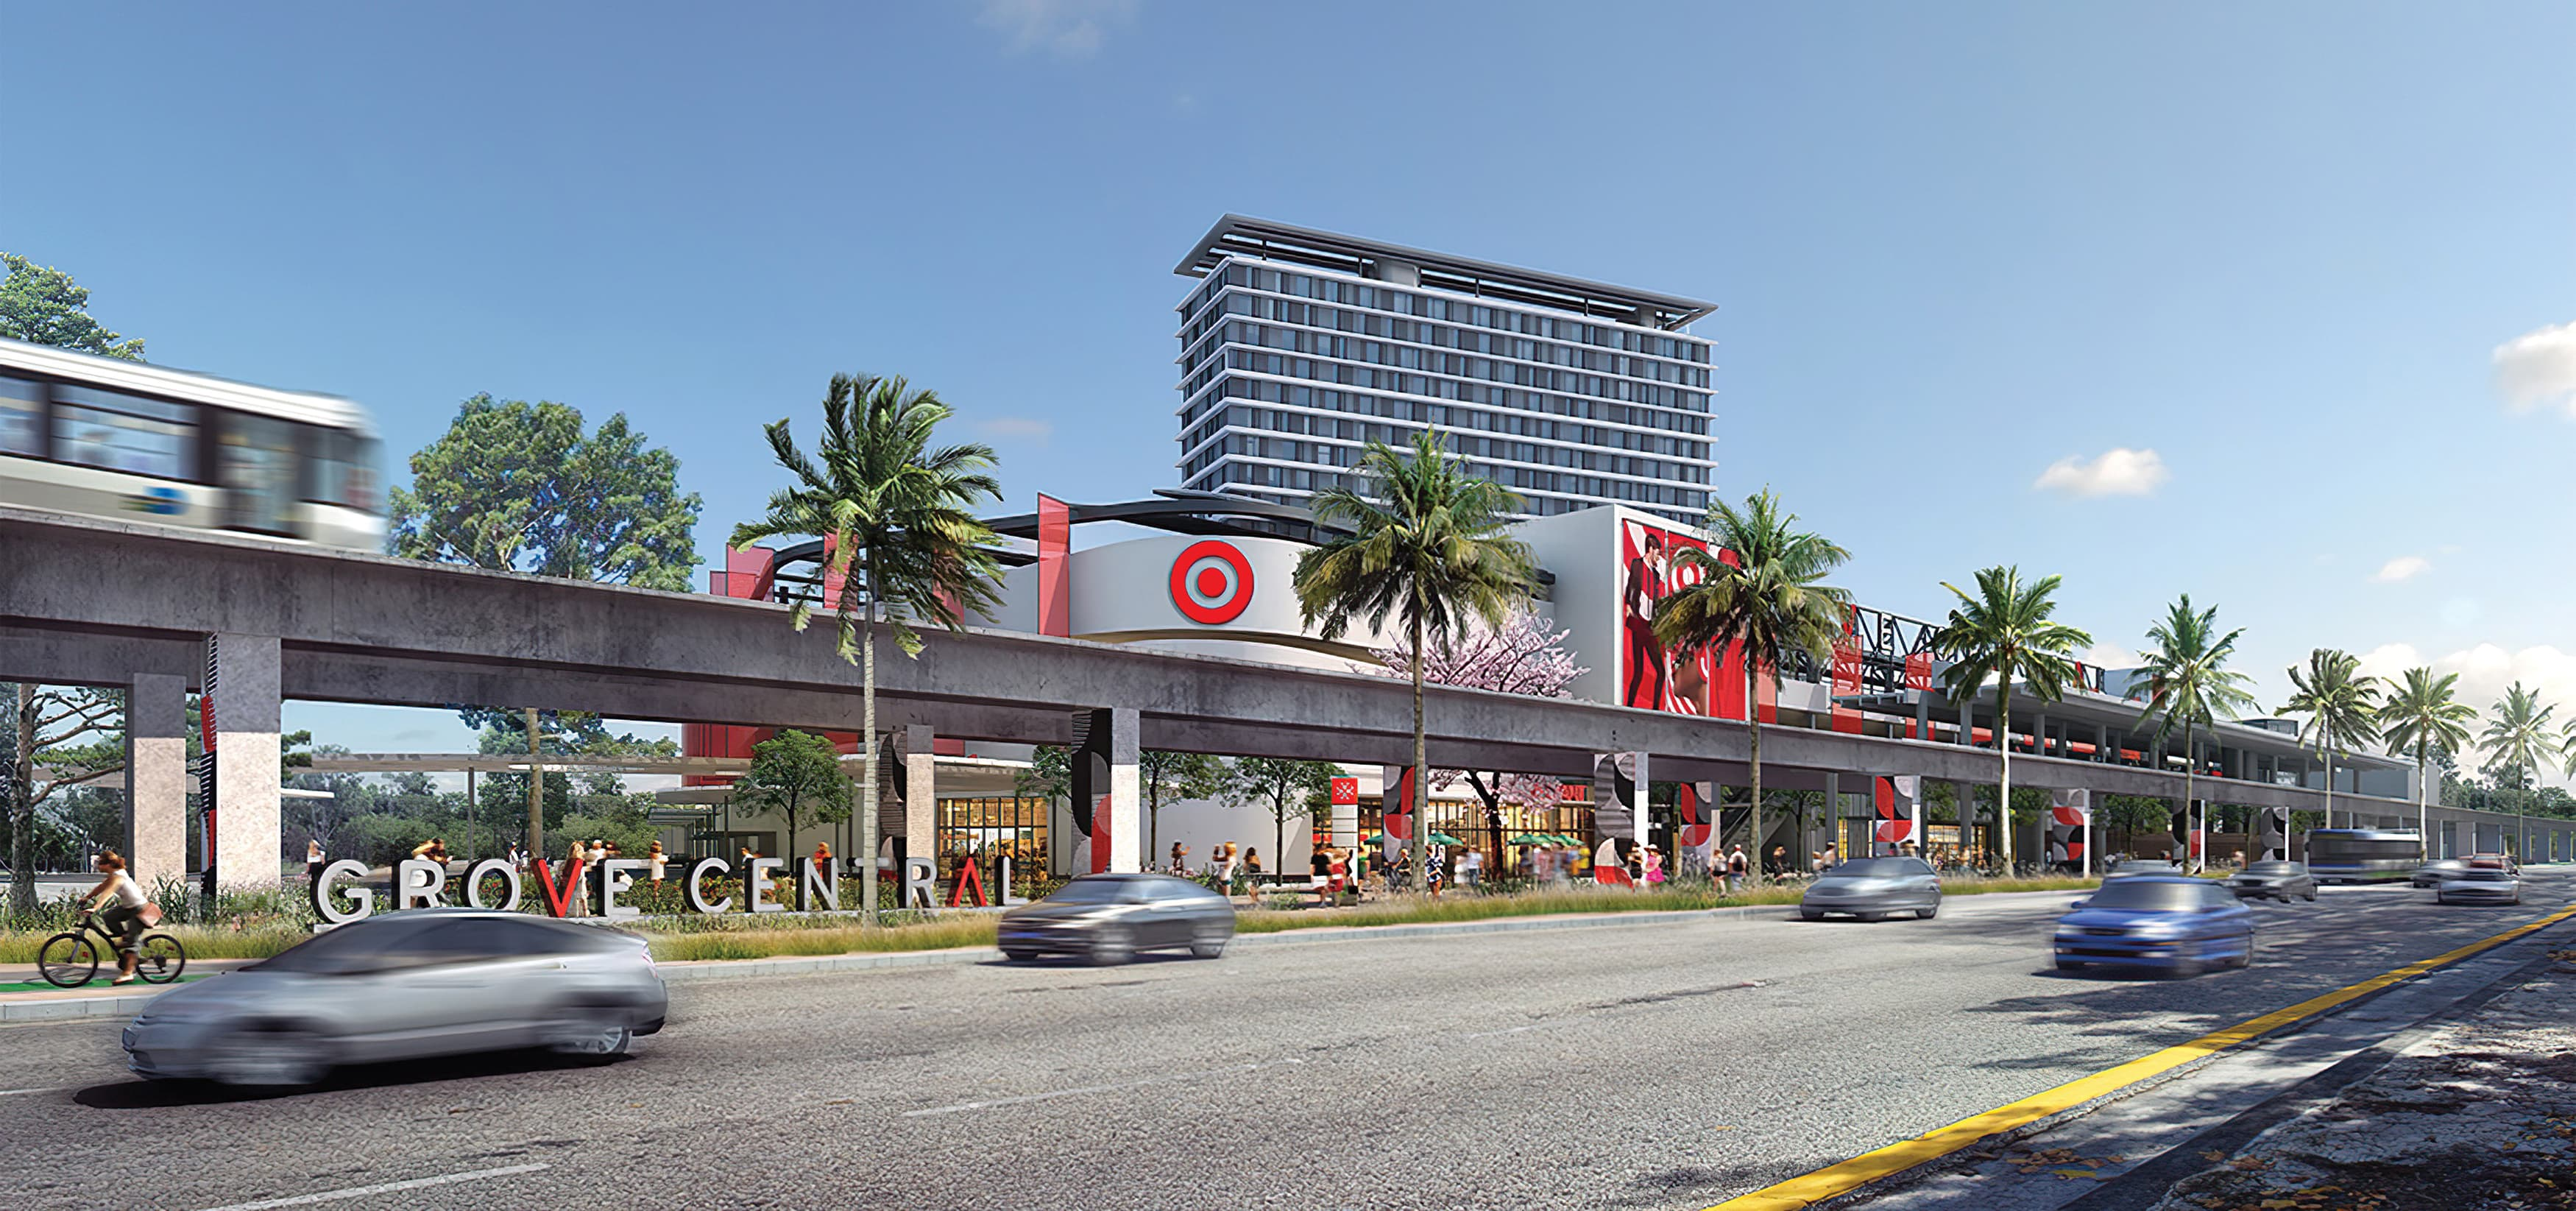 Grove Central, a mixed-use, retail project located in Coconut Grove, Florida. RSM Design. Environmental Graphic Design, Wayfinding Signage, Placemaking, Graphic Architecture.